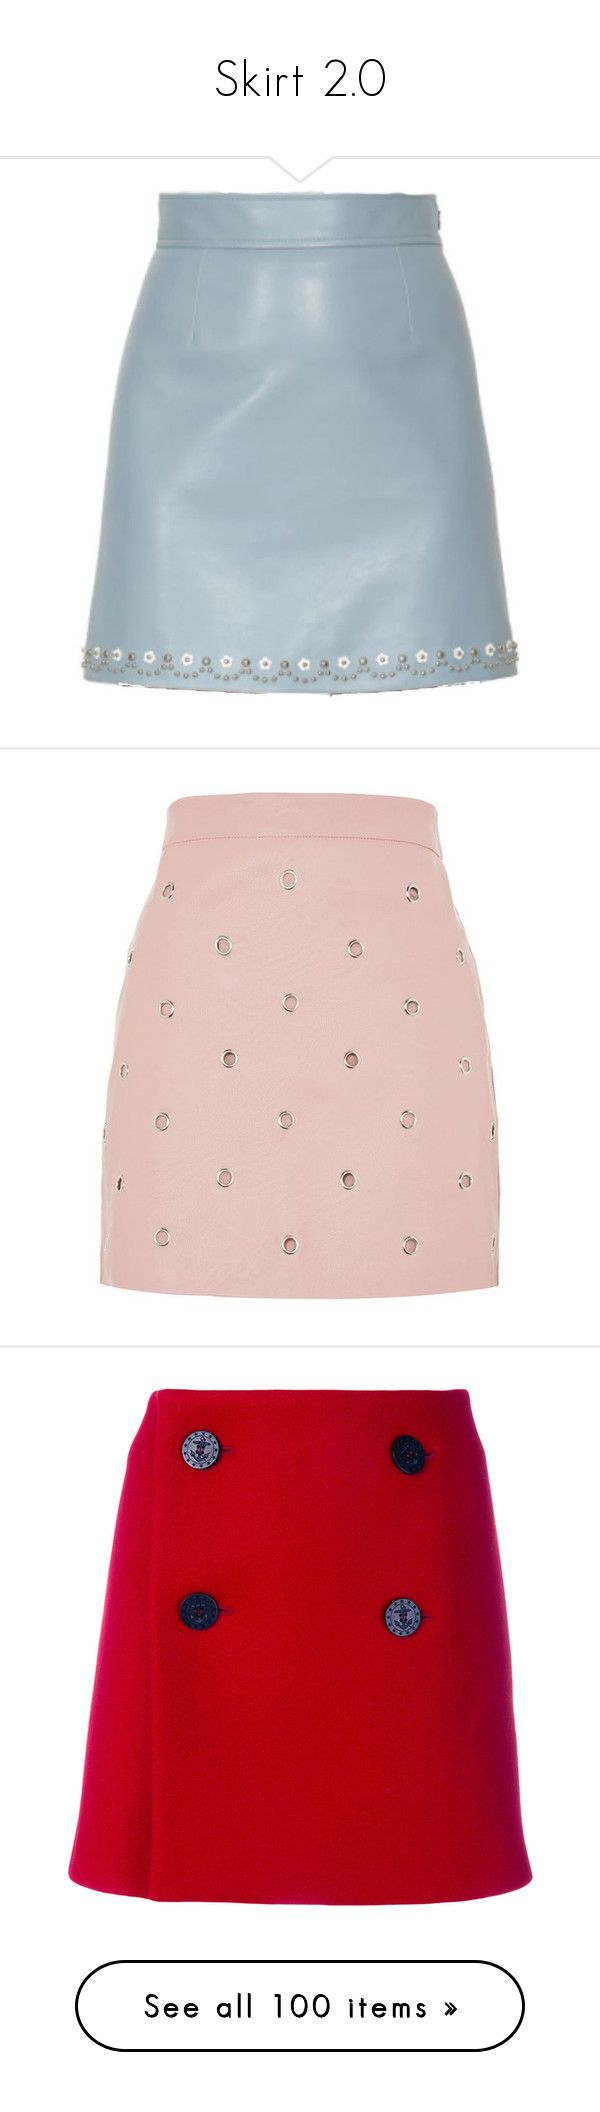 """Skirt 2.0"" by powergirls-officele ❤ liked on Polyvore featuring skirts, leather look skirt, pink skirt, eyelet skirt, pink faux leather skirt, topshop skirts, mini skirts, bottoms, clothes / skirts and dsquared"